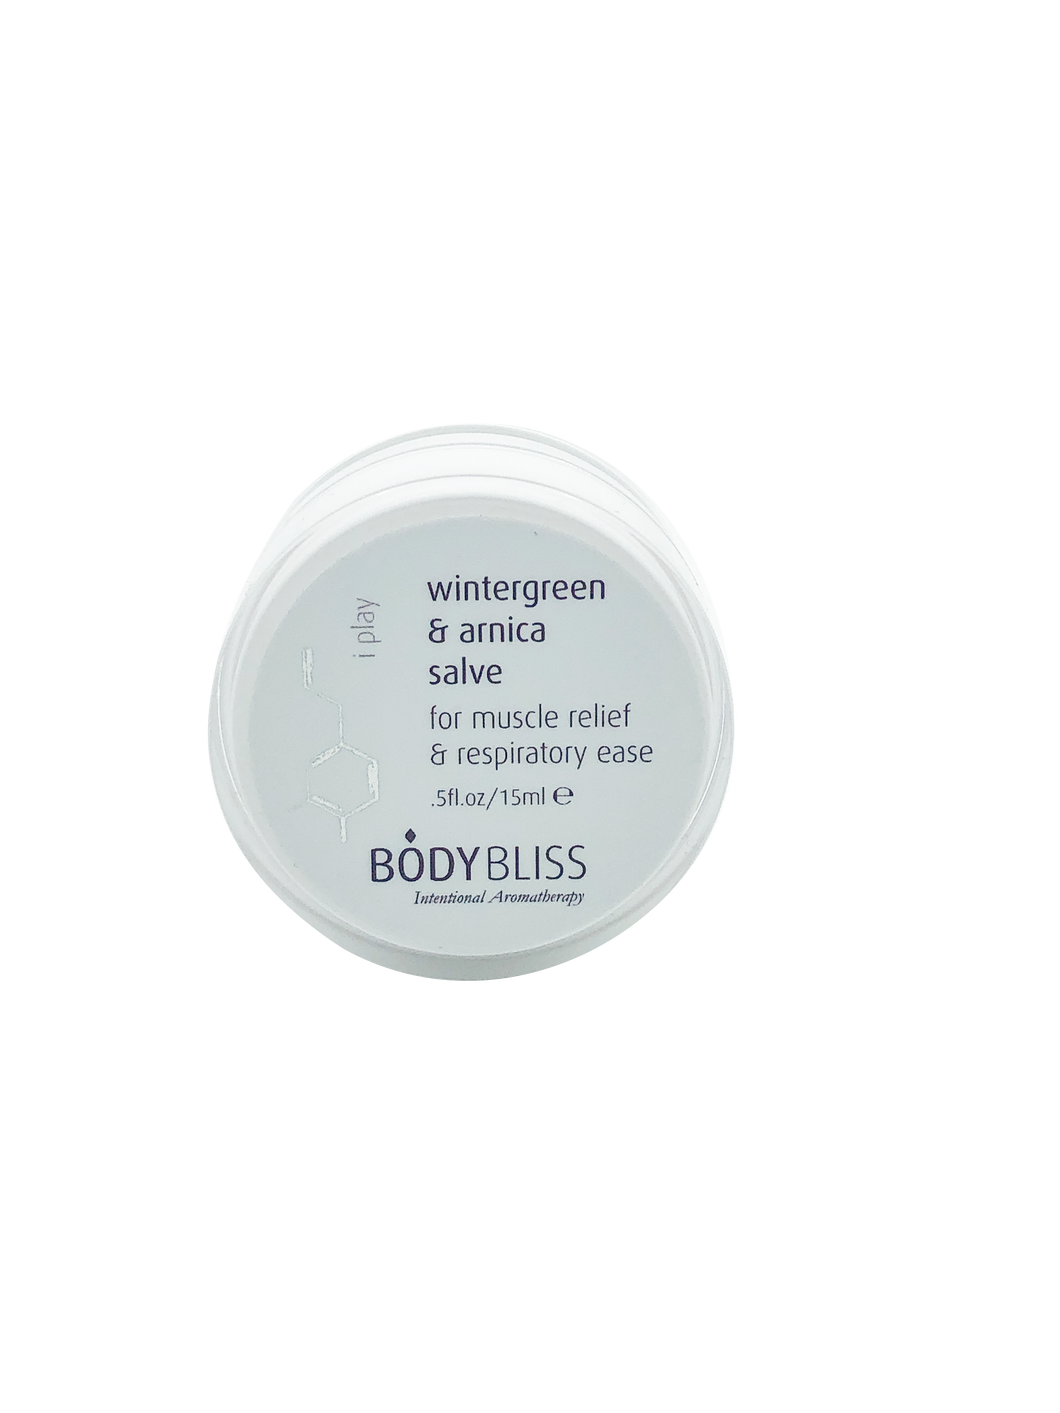 Body Bliss Wintergreen & Arnica Salve